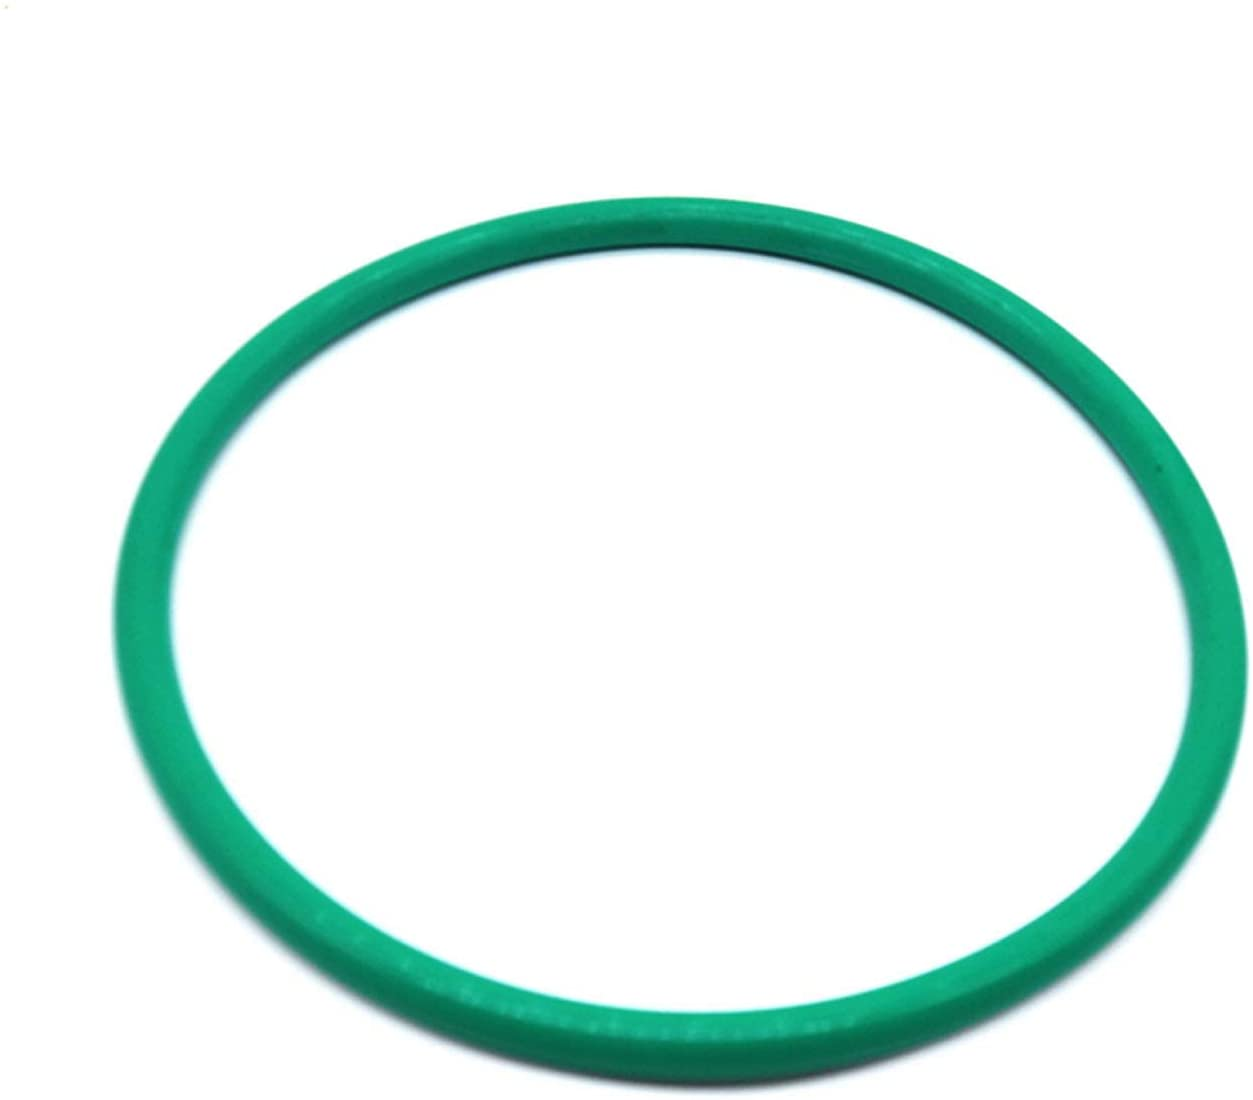 FKM Rubber O Rings Seal Assortment Set Big Size Cross Section 5.7mm(0.22in) x Outer Diameter 100mm(3.93in) for Car Auto Vehicle Repair General Repair Universal Use